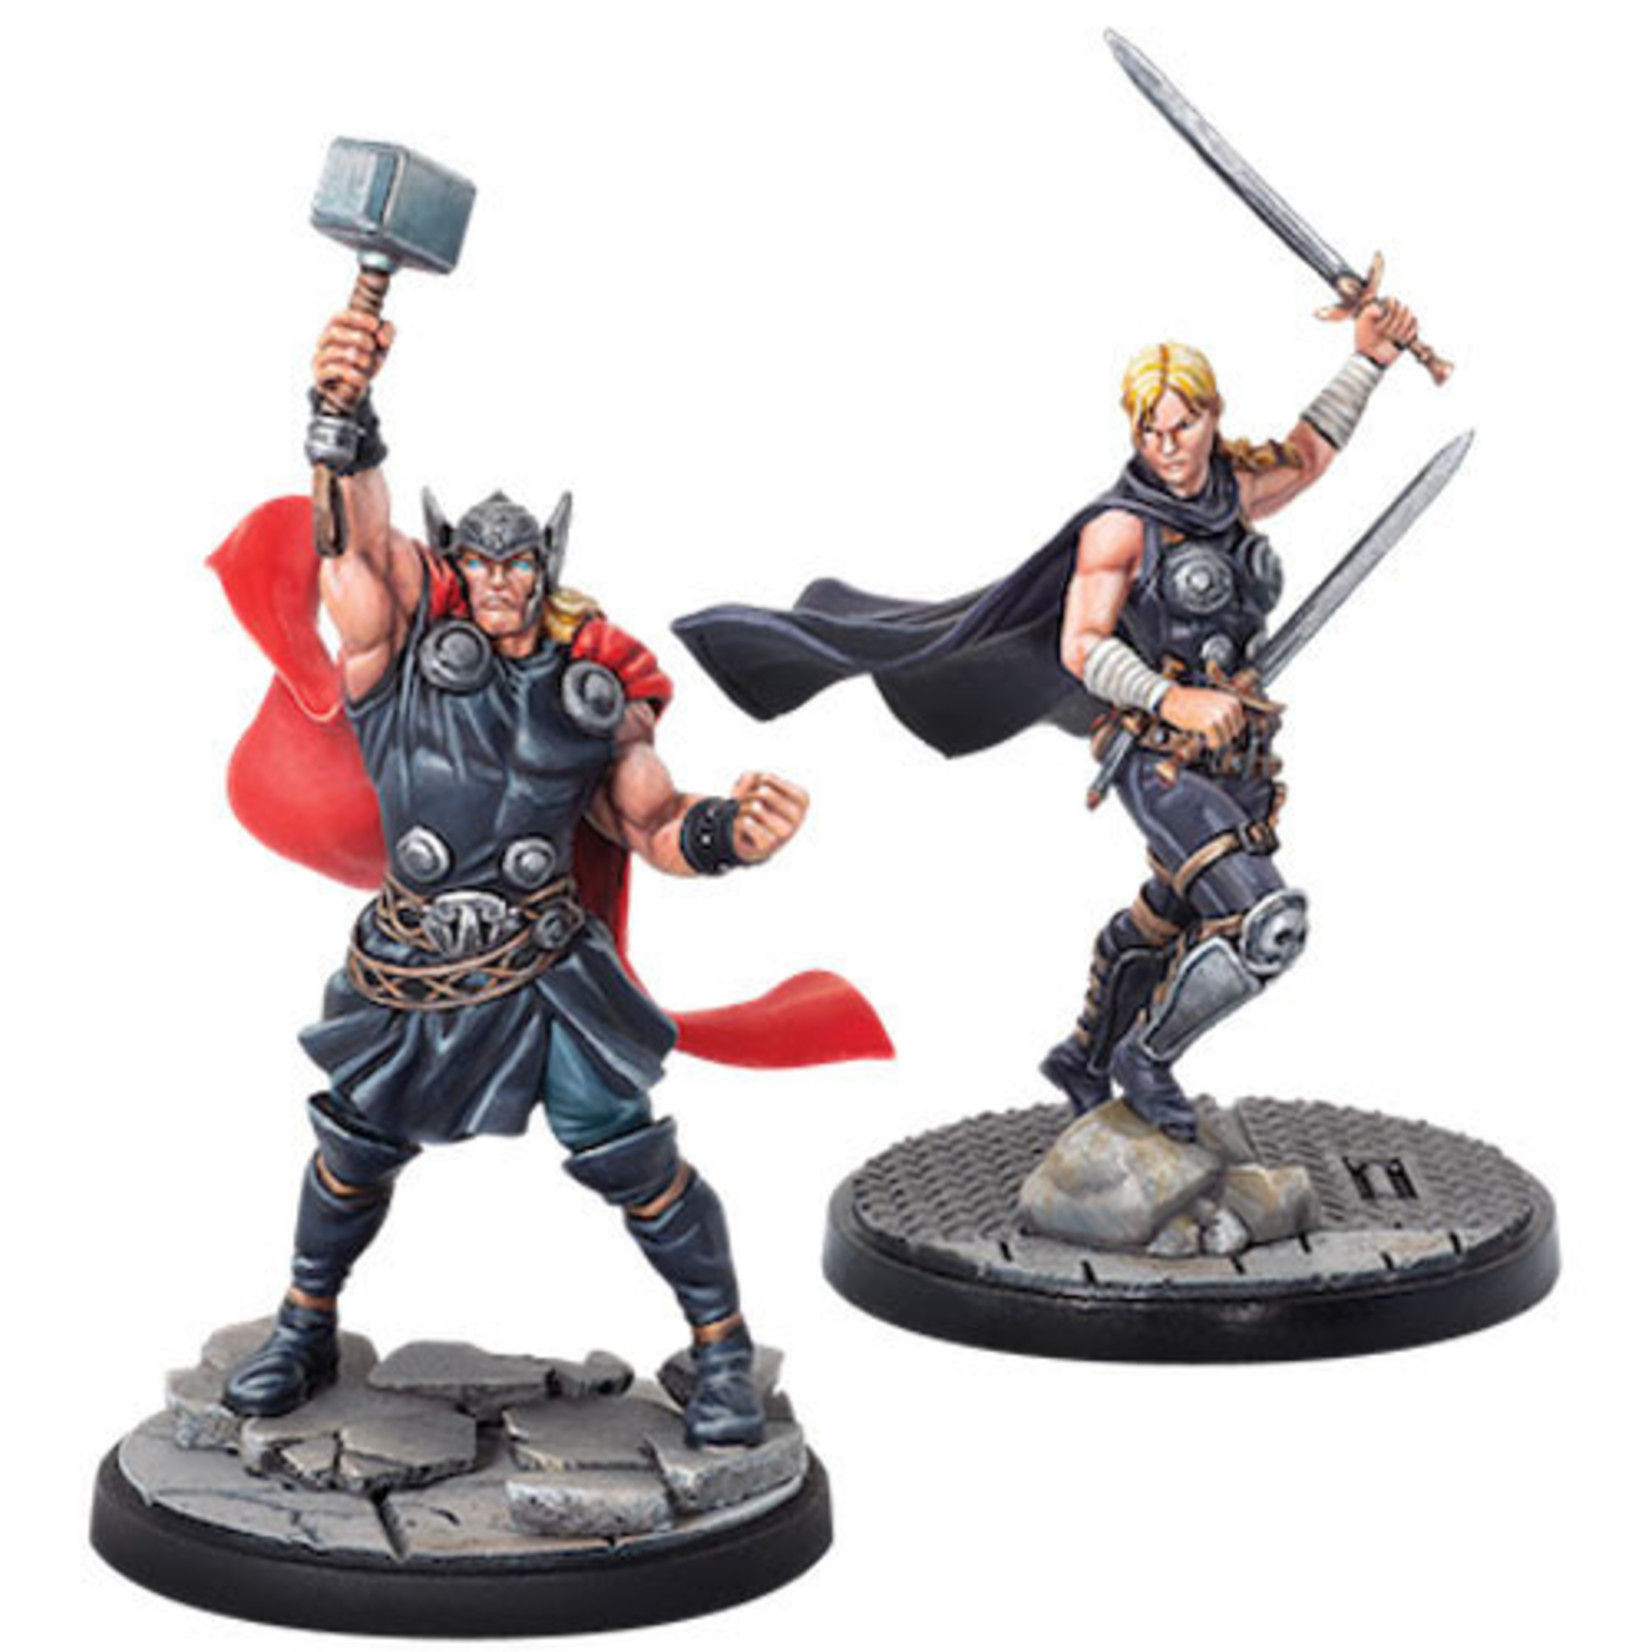 ASMODEE EDITIONS Marvel: Crisis Protocol - Thor and Valkyrie Character Pack